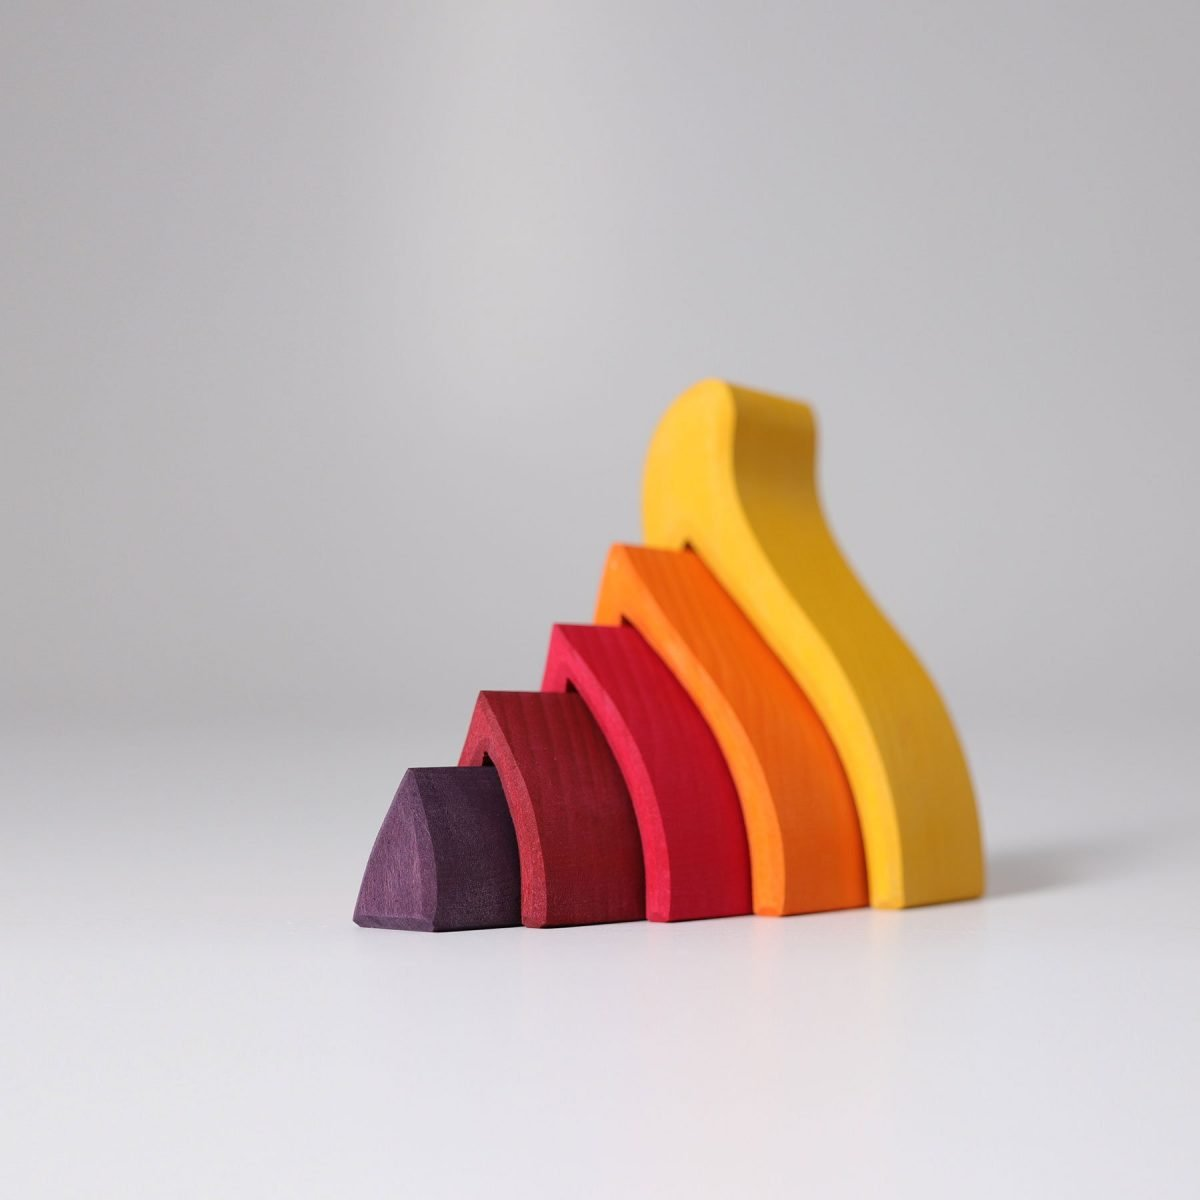 5 piece fire stacking toy